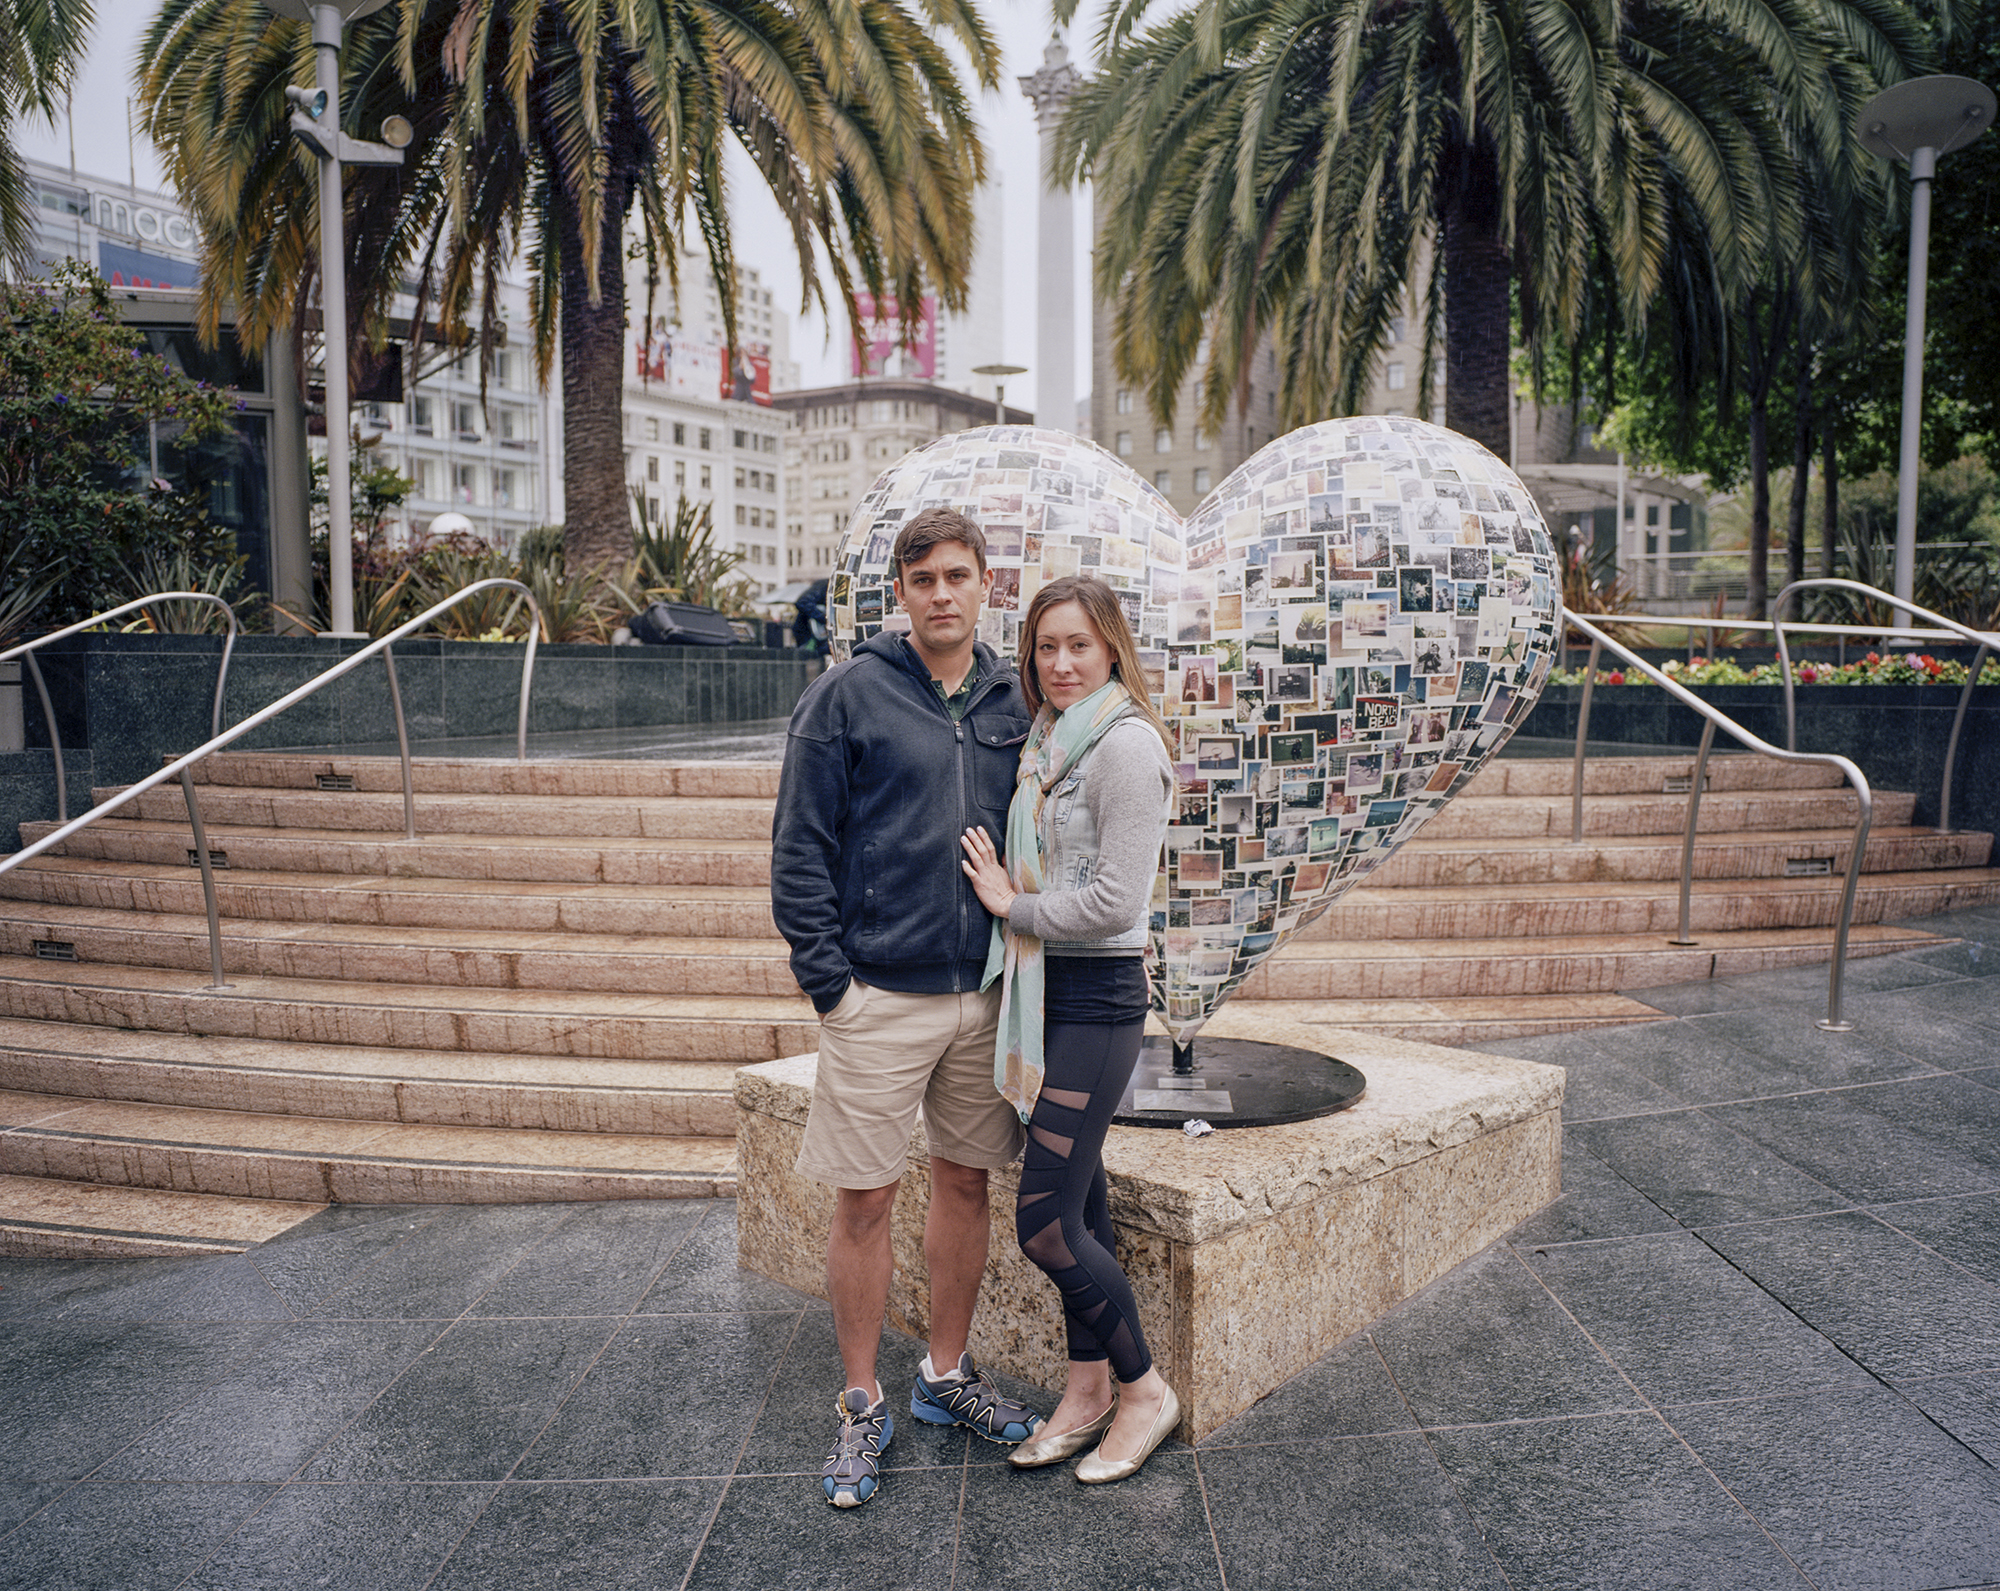 Couple. San Francisco, California. June 2015.